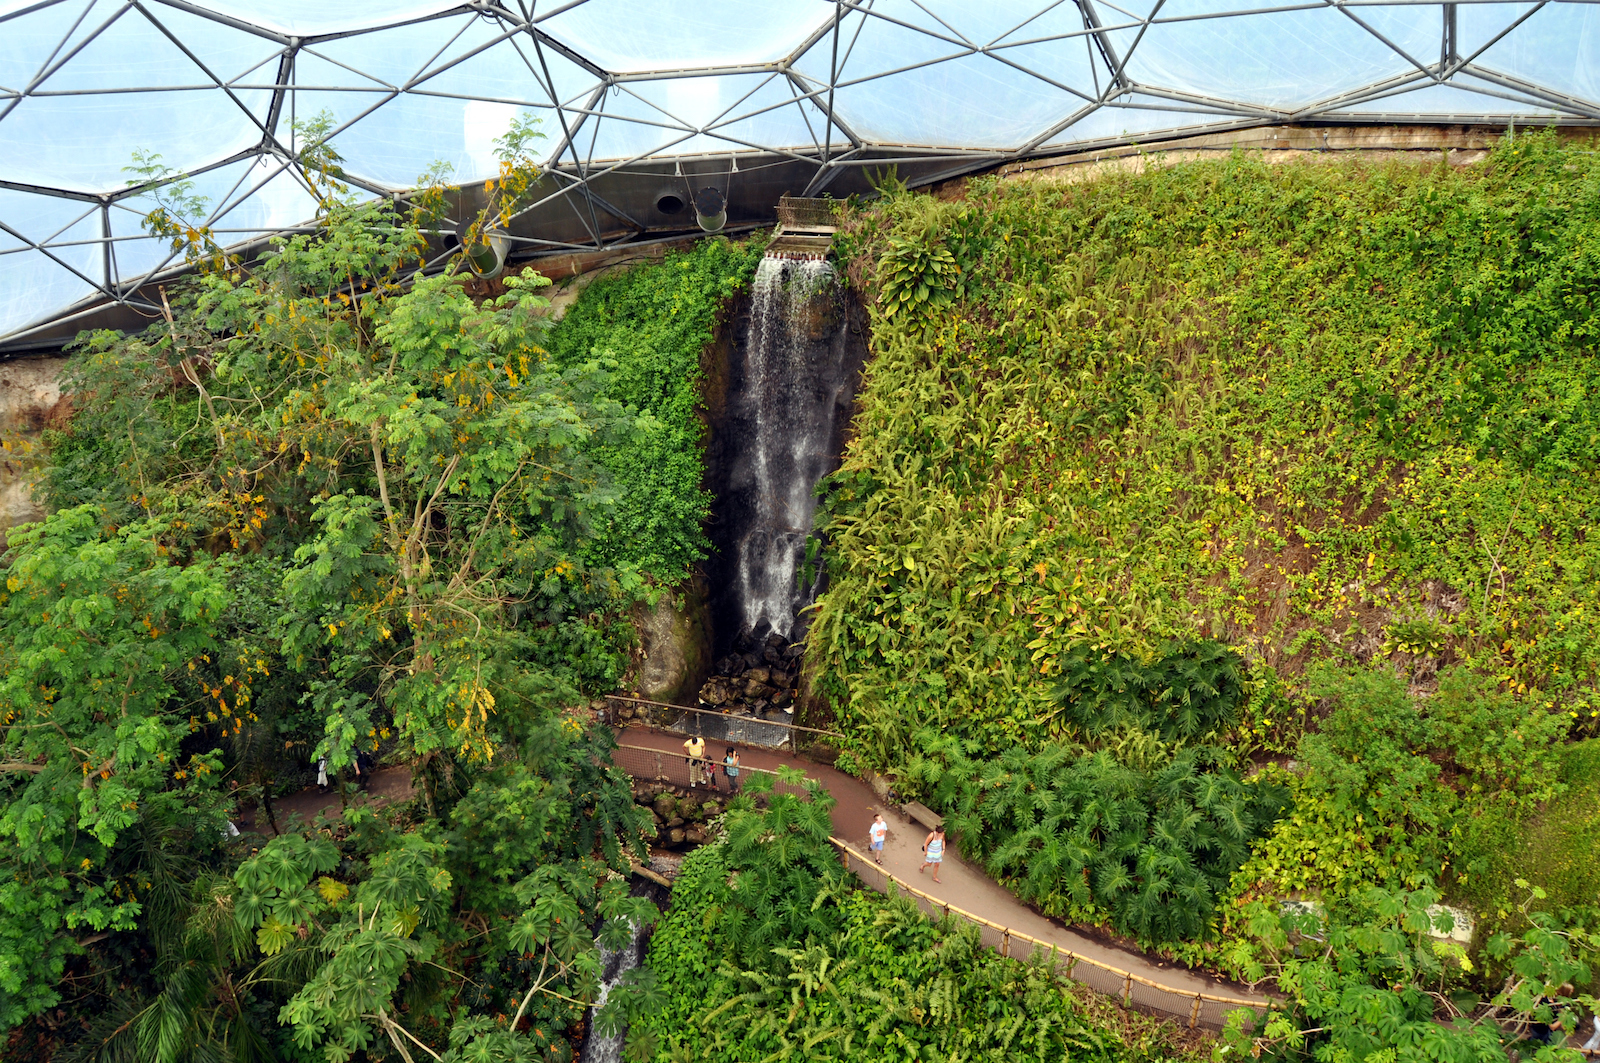 The Eden Project - Man Made Sustainable Forest